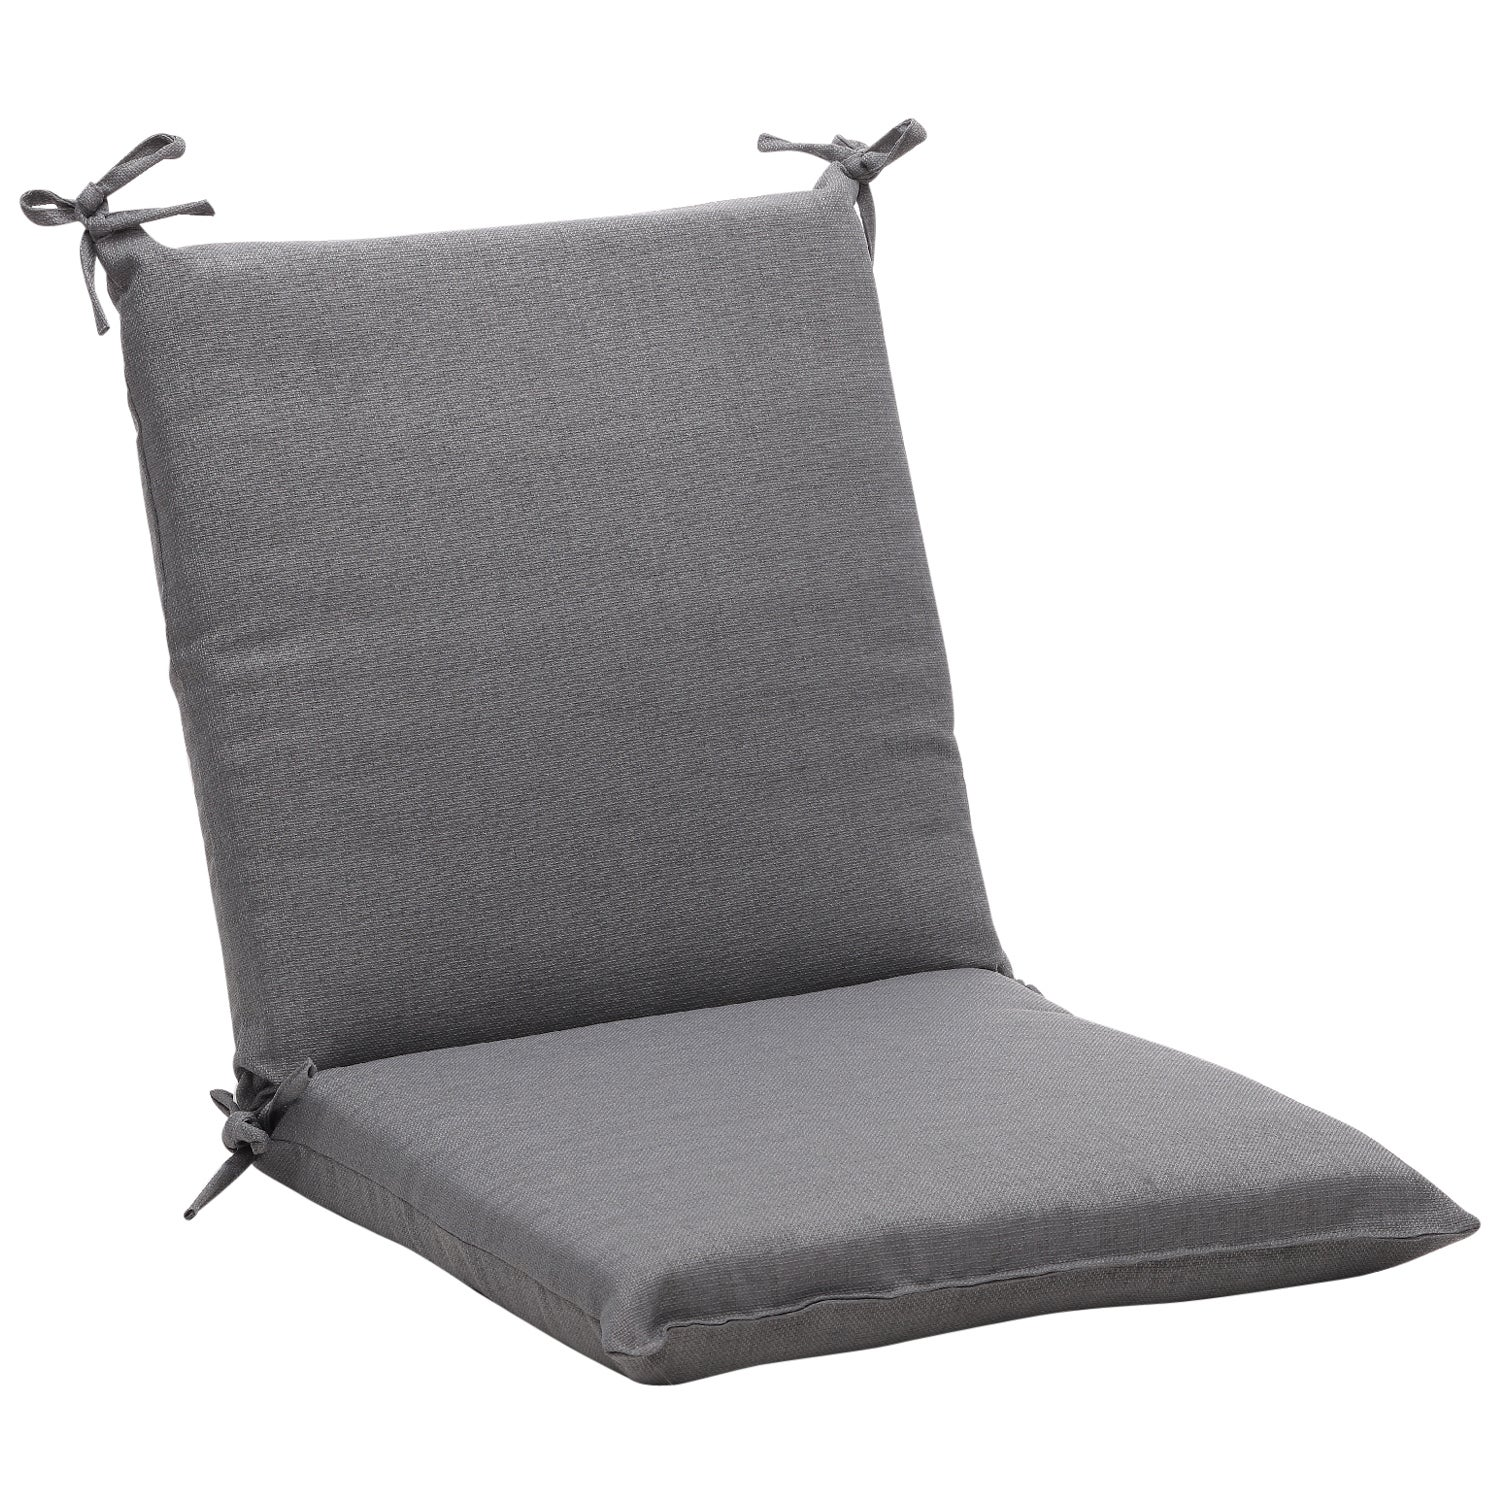 Squared Solid Gray Textured Outdoor Chair Cushion Free